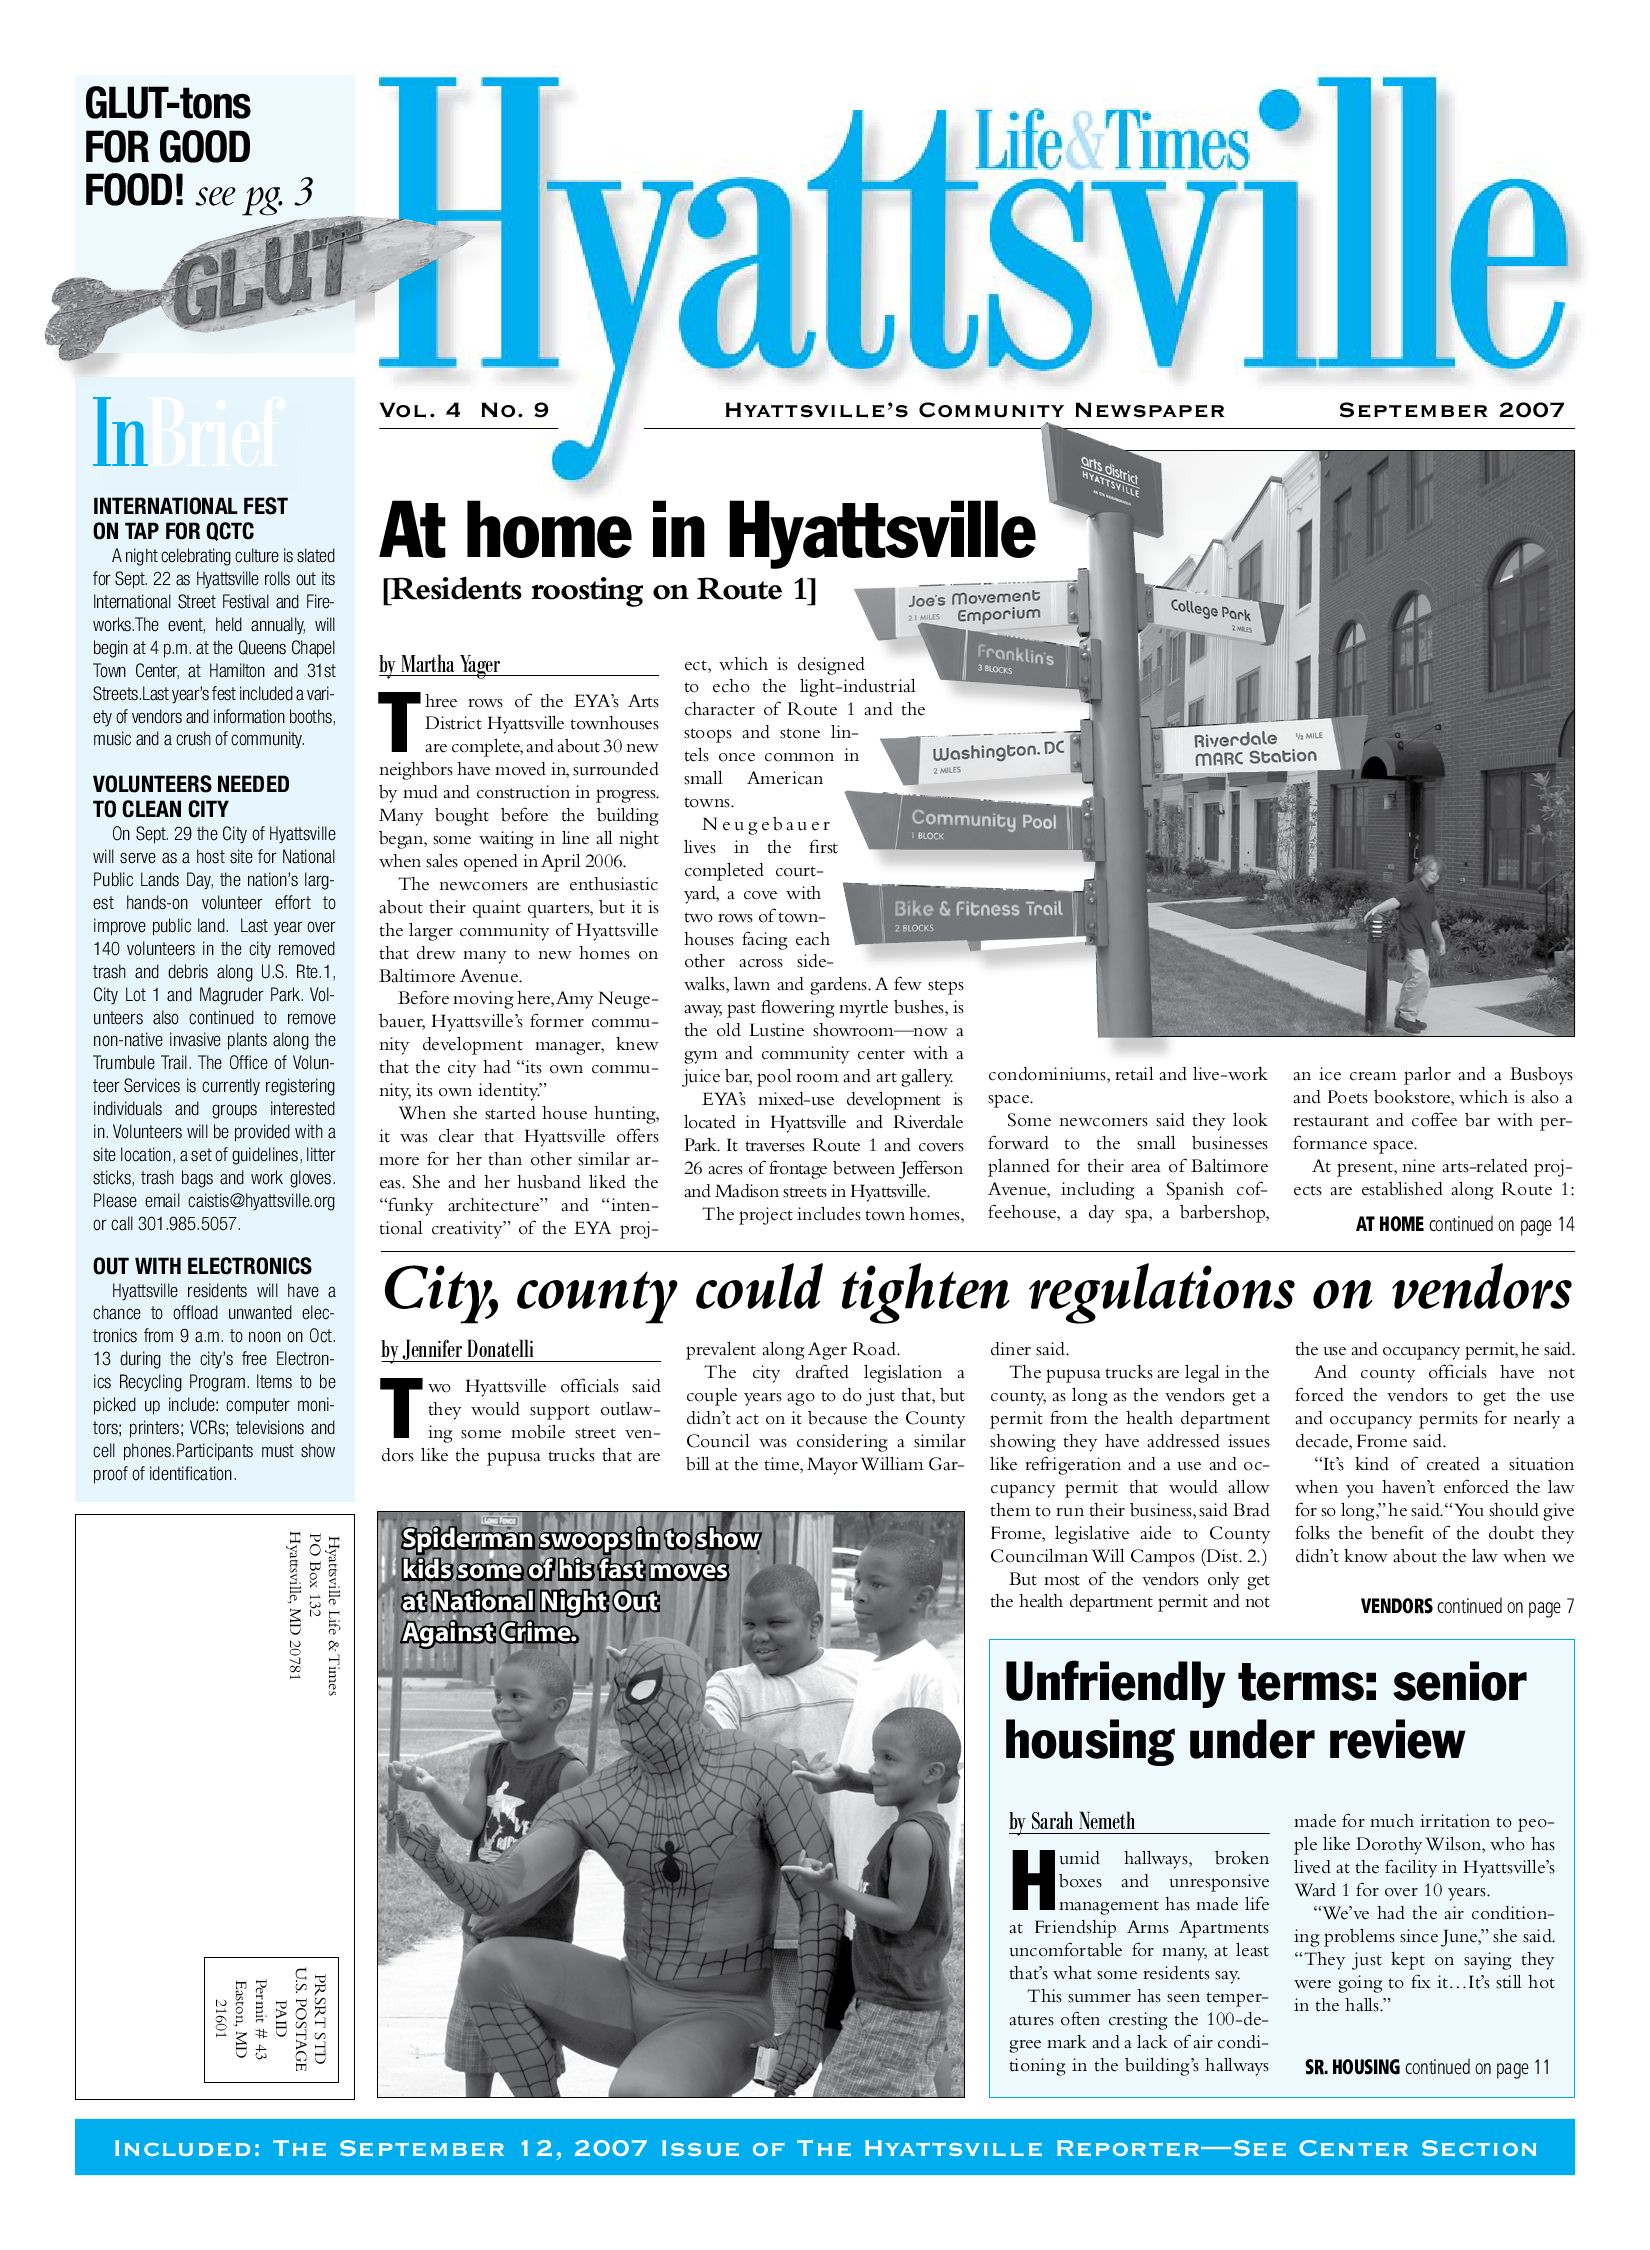 df4a8638b3 Hyattsville Life   Times September 2007 Issue by Hyattsville Life and Times  - issuu